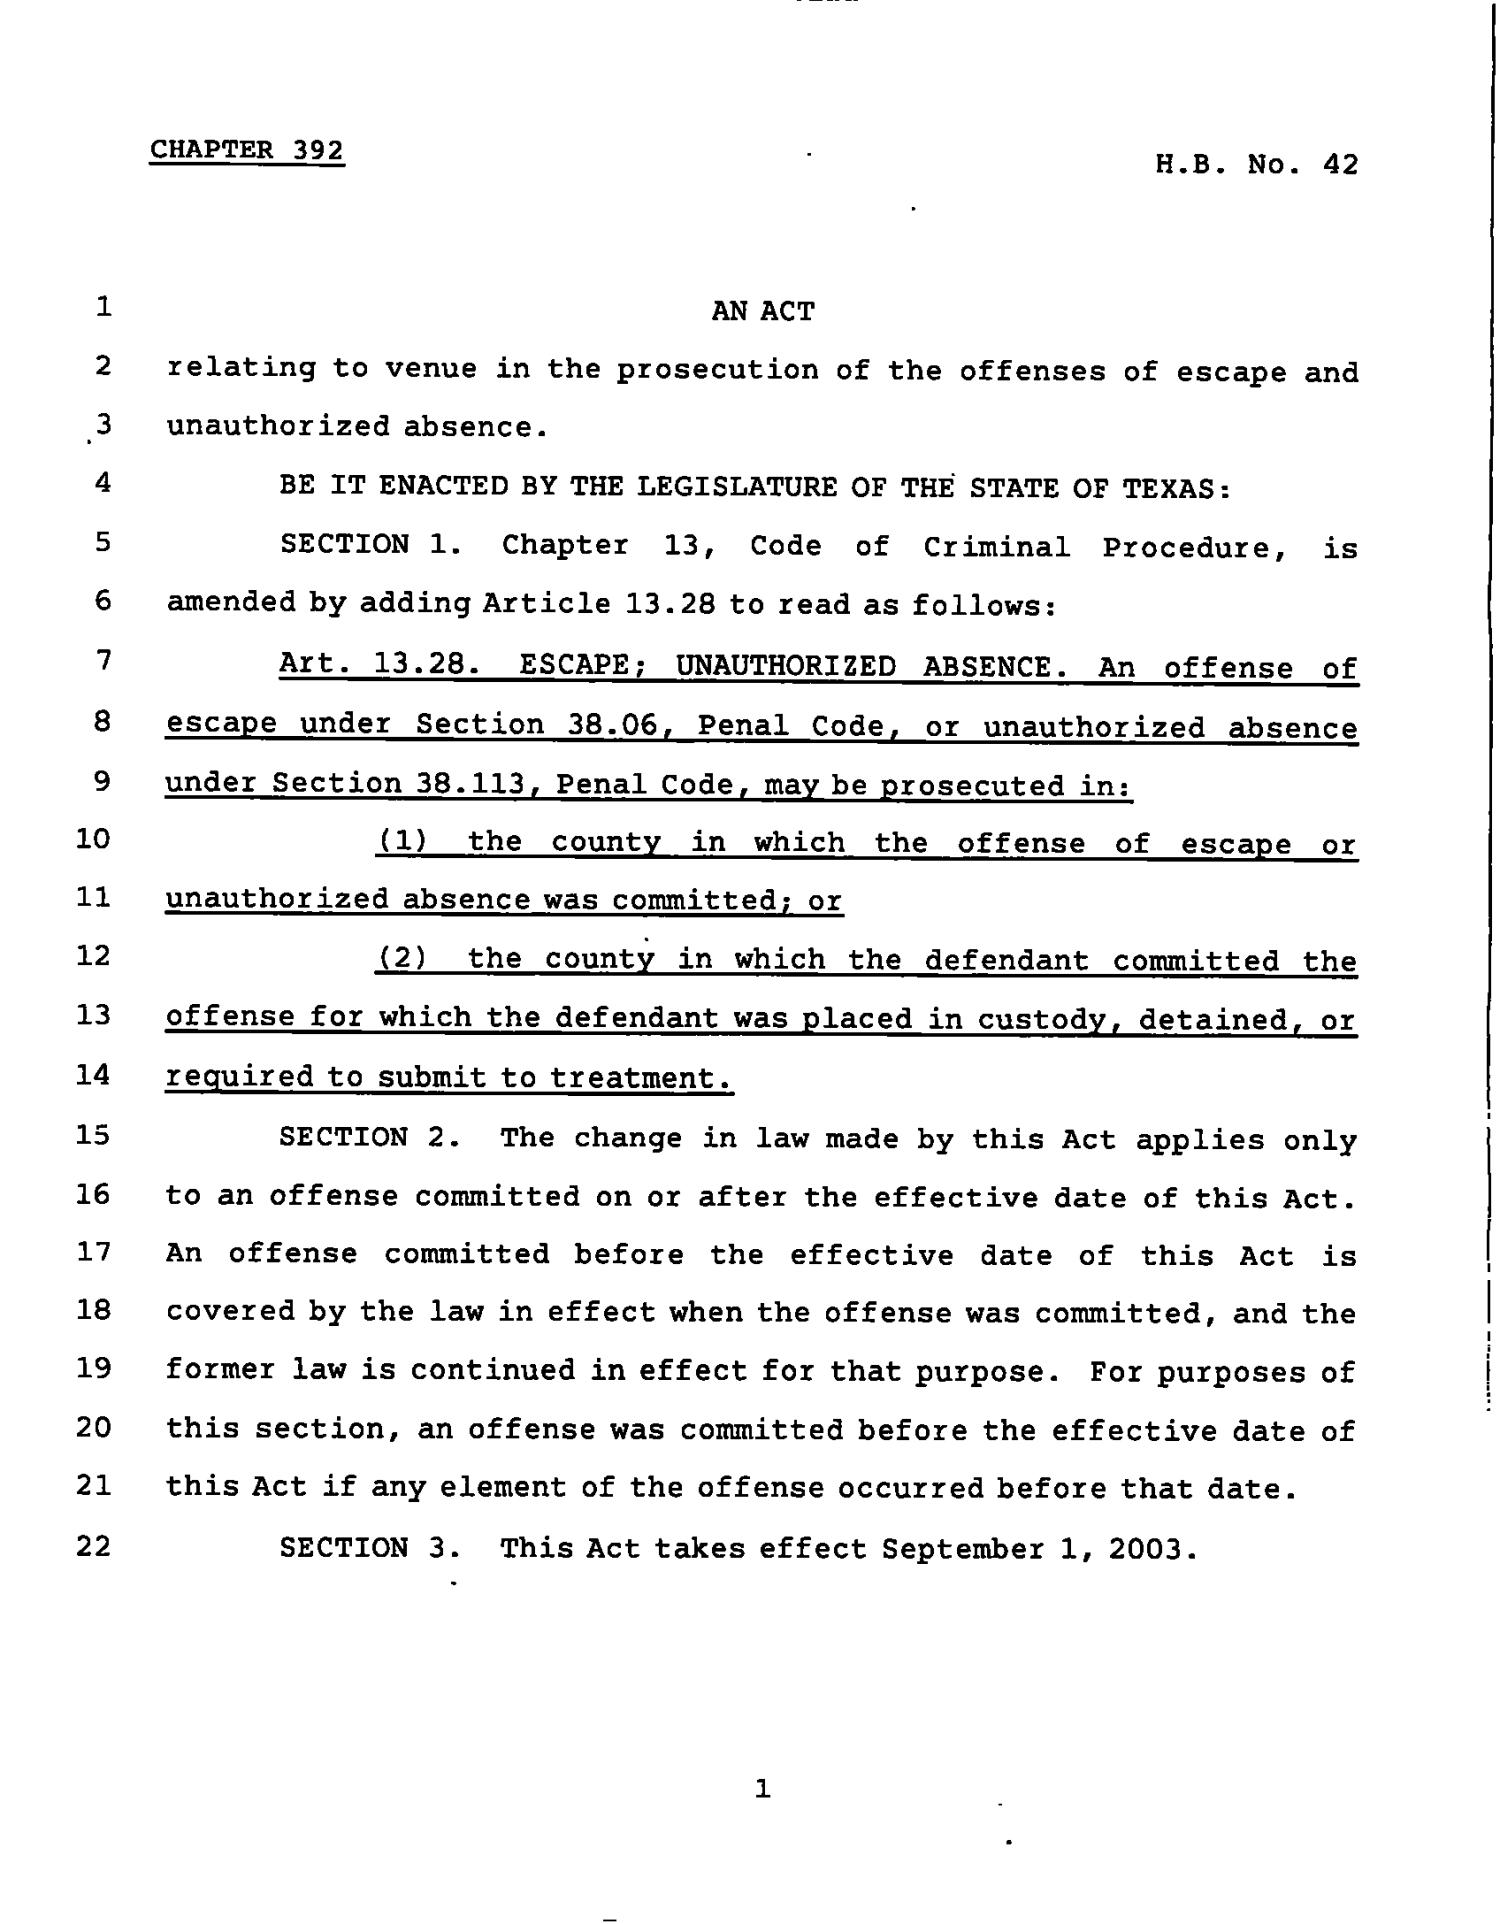 78th Texas Legislature, Regular Session, House Bill 42, Chapter 392                                                                                                      [Sequence #]: 1 of 2